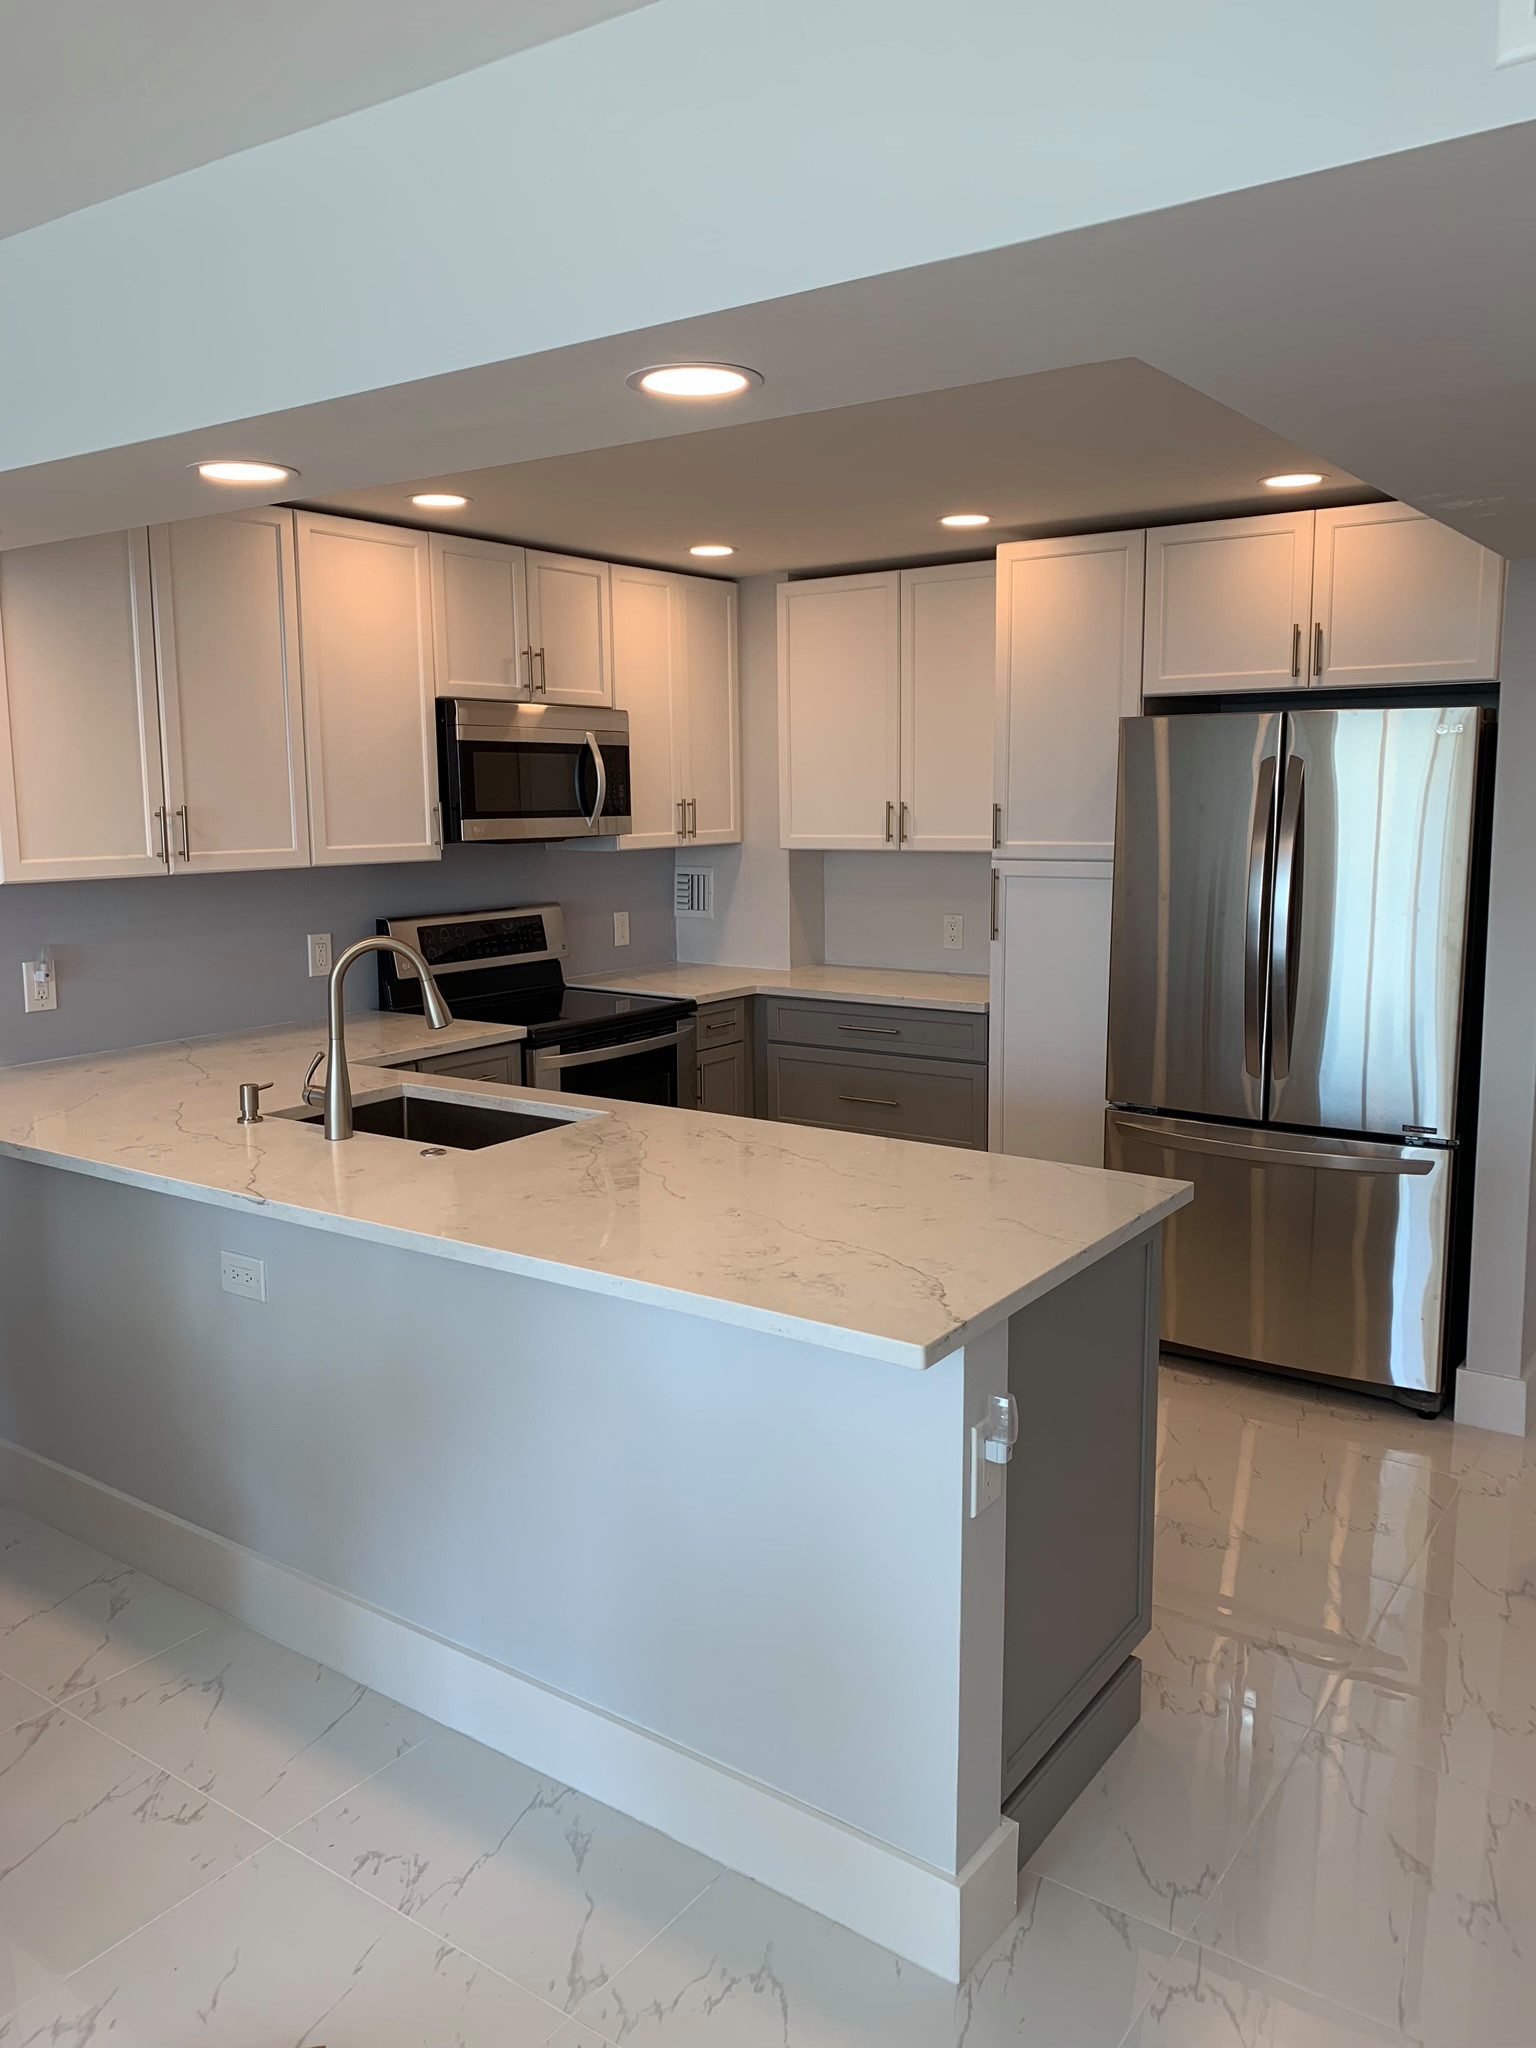 75 Beautiful Modern Marble Floor Kitchen Pictures Ideas January 2021 Houzz